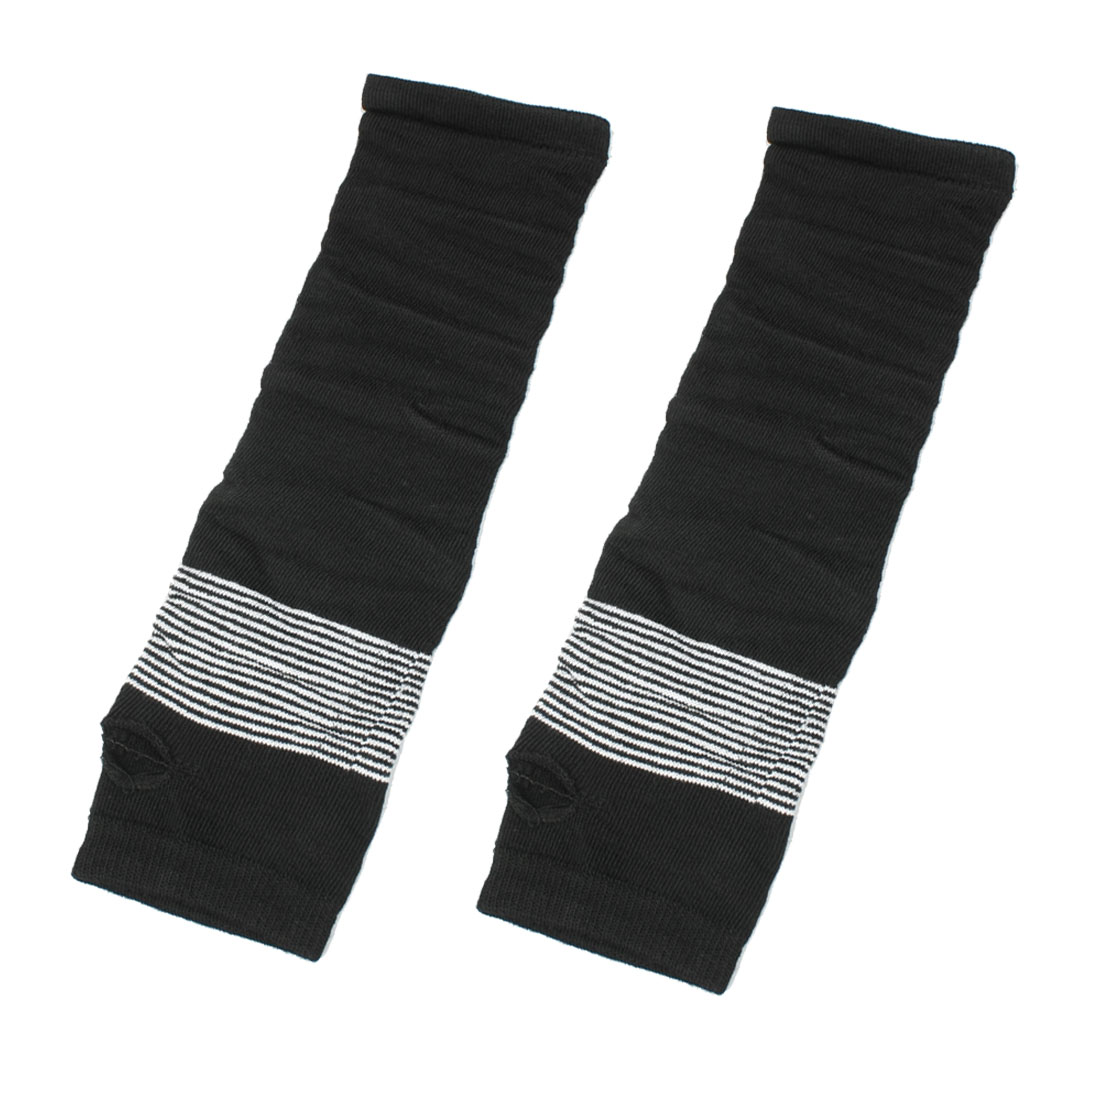 Pair White Black Stripes Acrylic Fingerless Arm Warmers Gloves for Girls